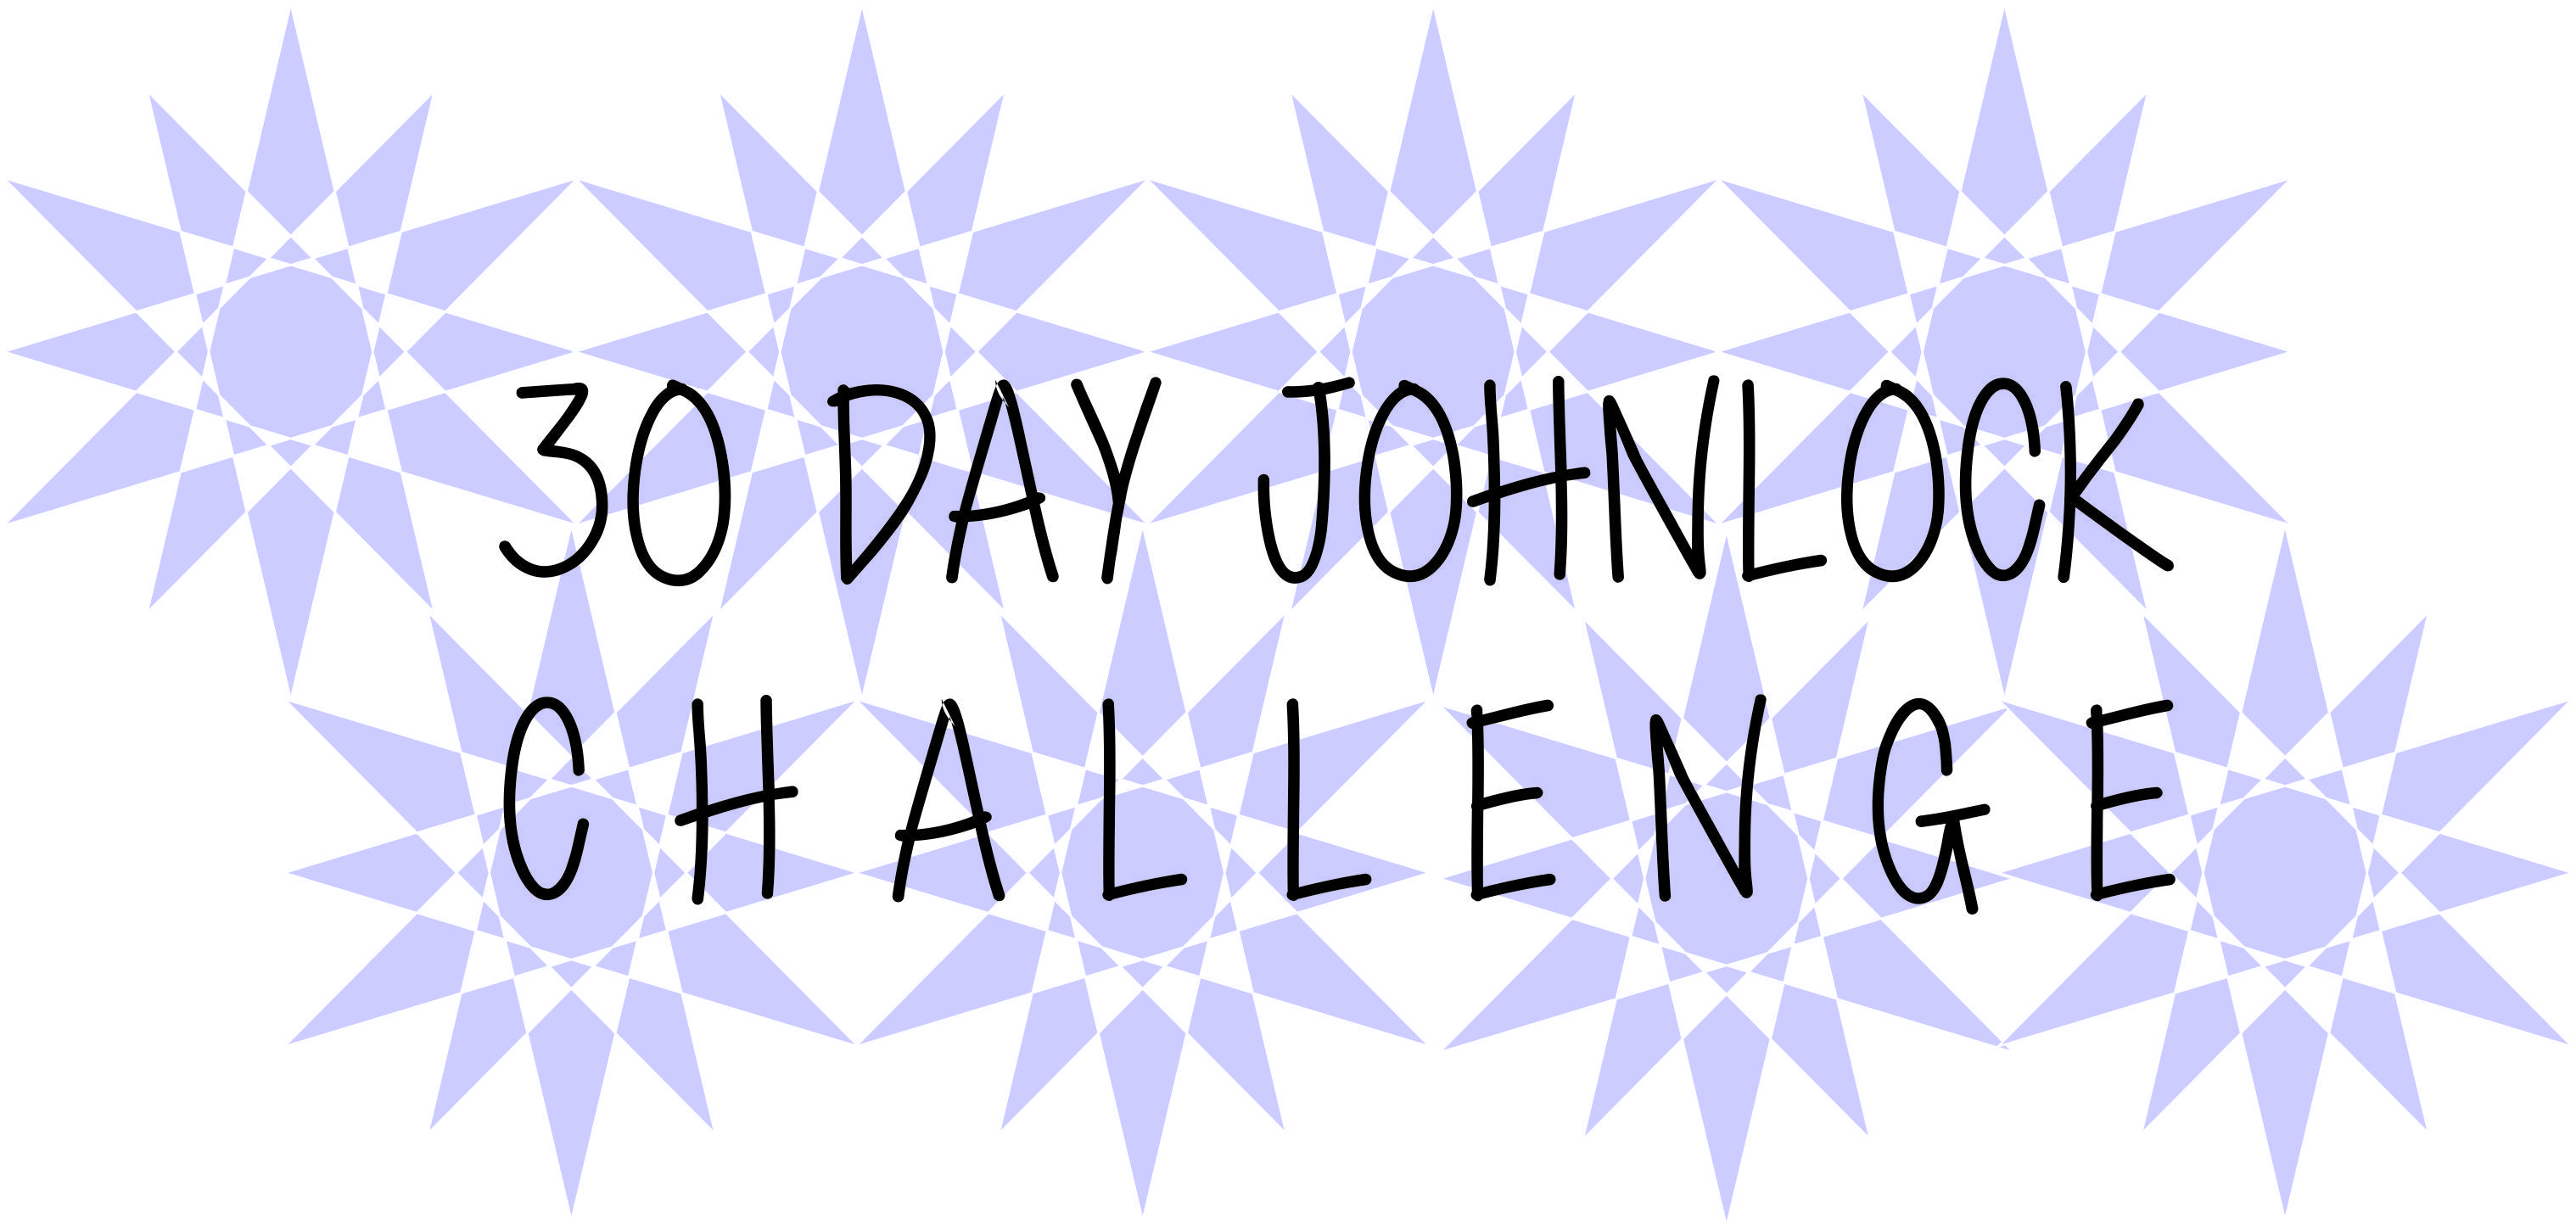 30 day Johnlock Challenge; anyone want to join? Look for my new board.